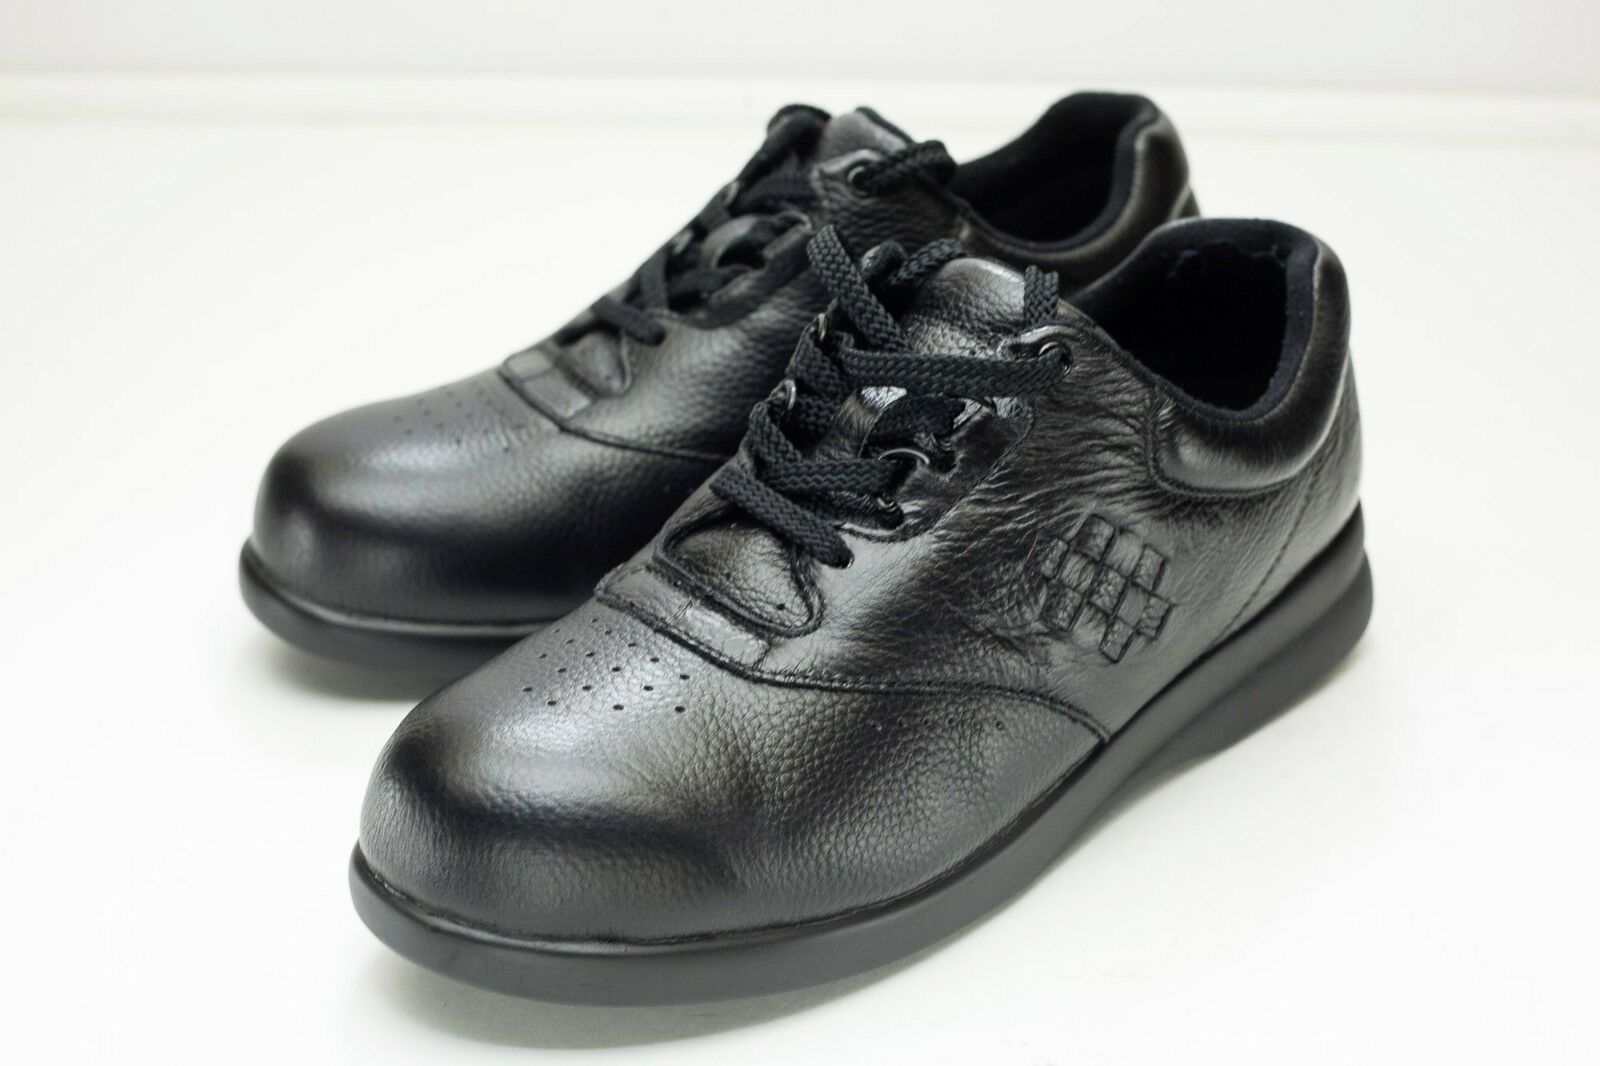 P.w. Nero minor Leasure 9 W Nero P.w. Lace Up Shoe d0ed5f